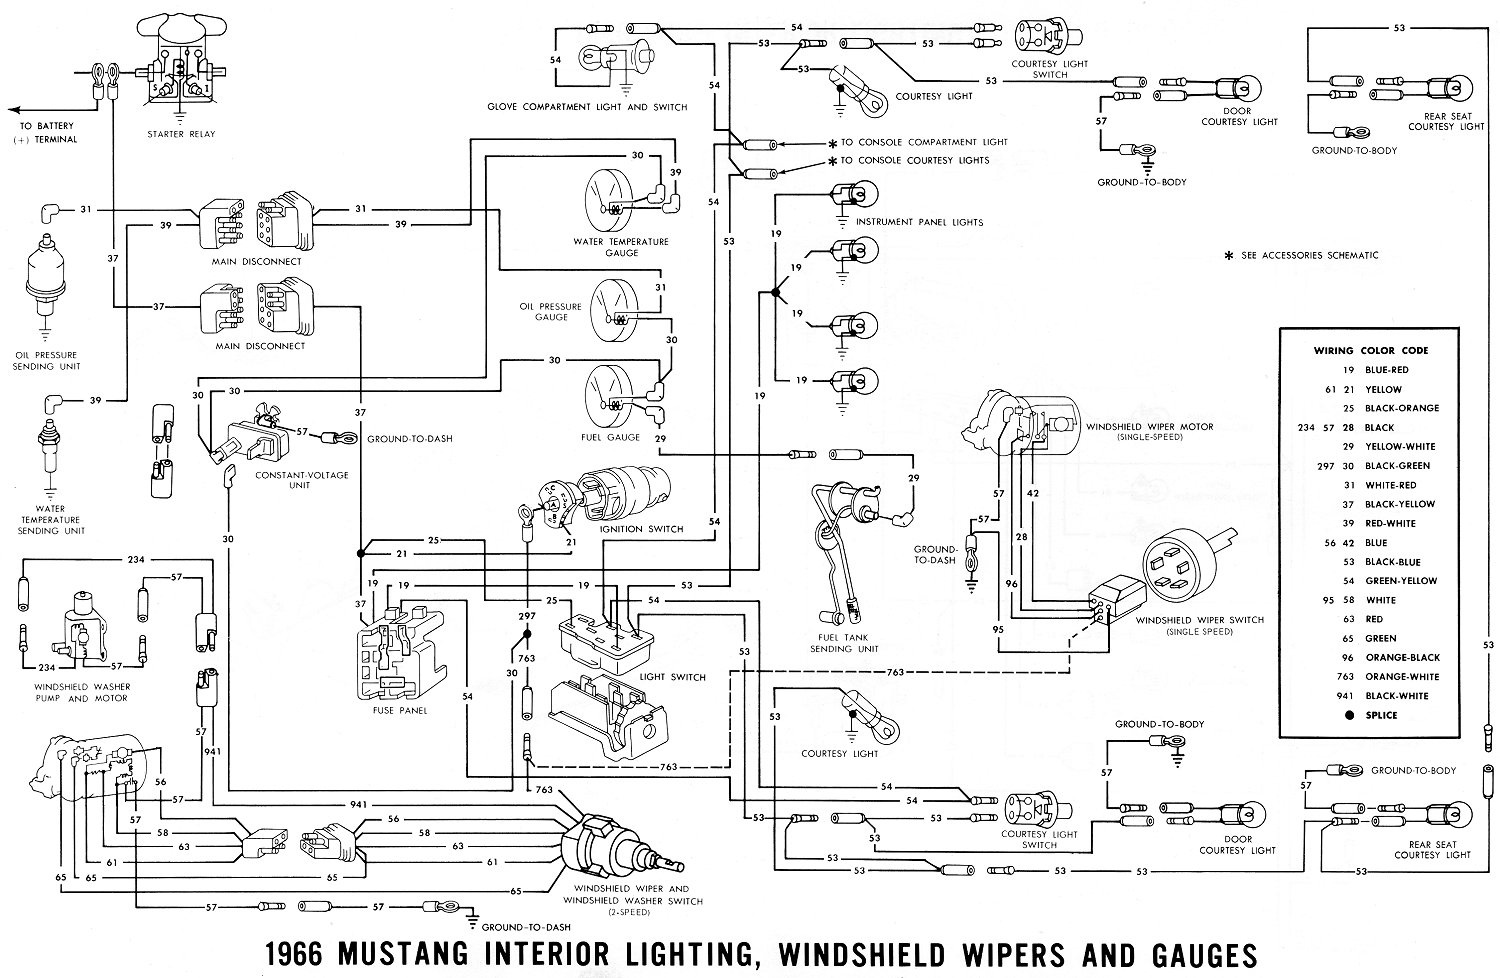 2001 Ford Mustang Fuse Box Diagram On 2001 Mustang Wiring Diagram